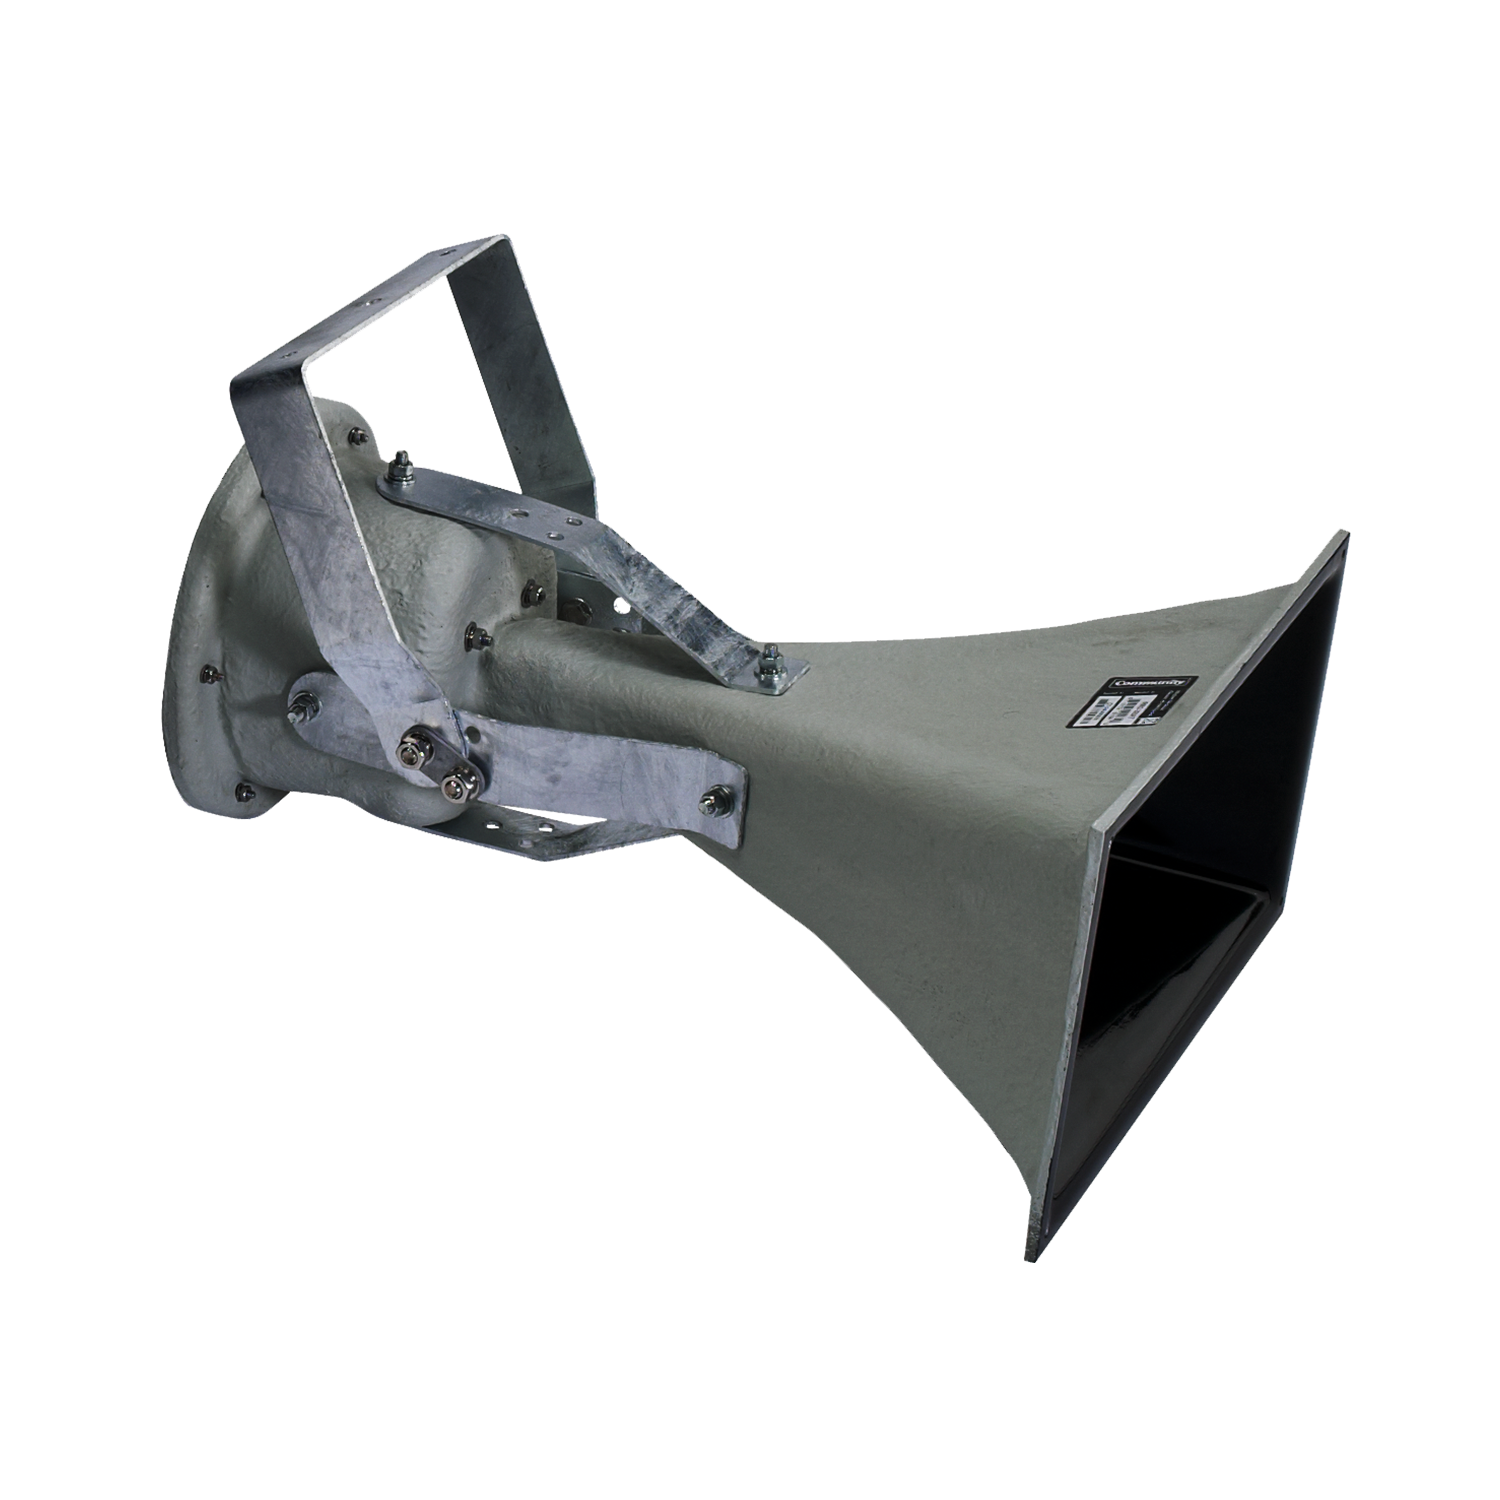 RMG-200A Horn - Voice Range Announcement System